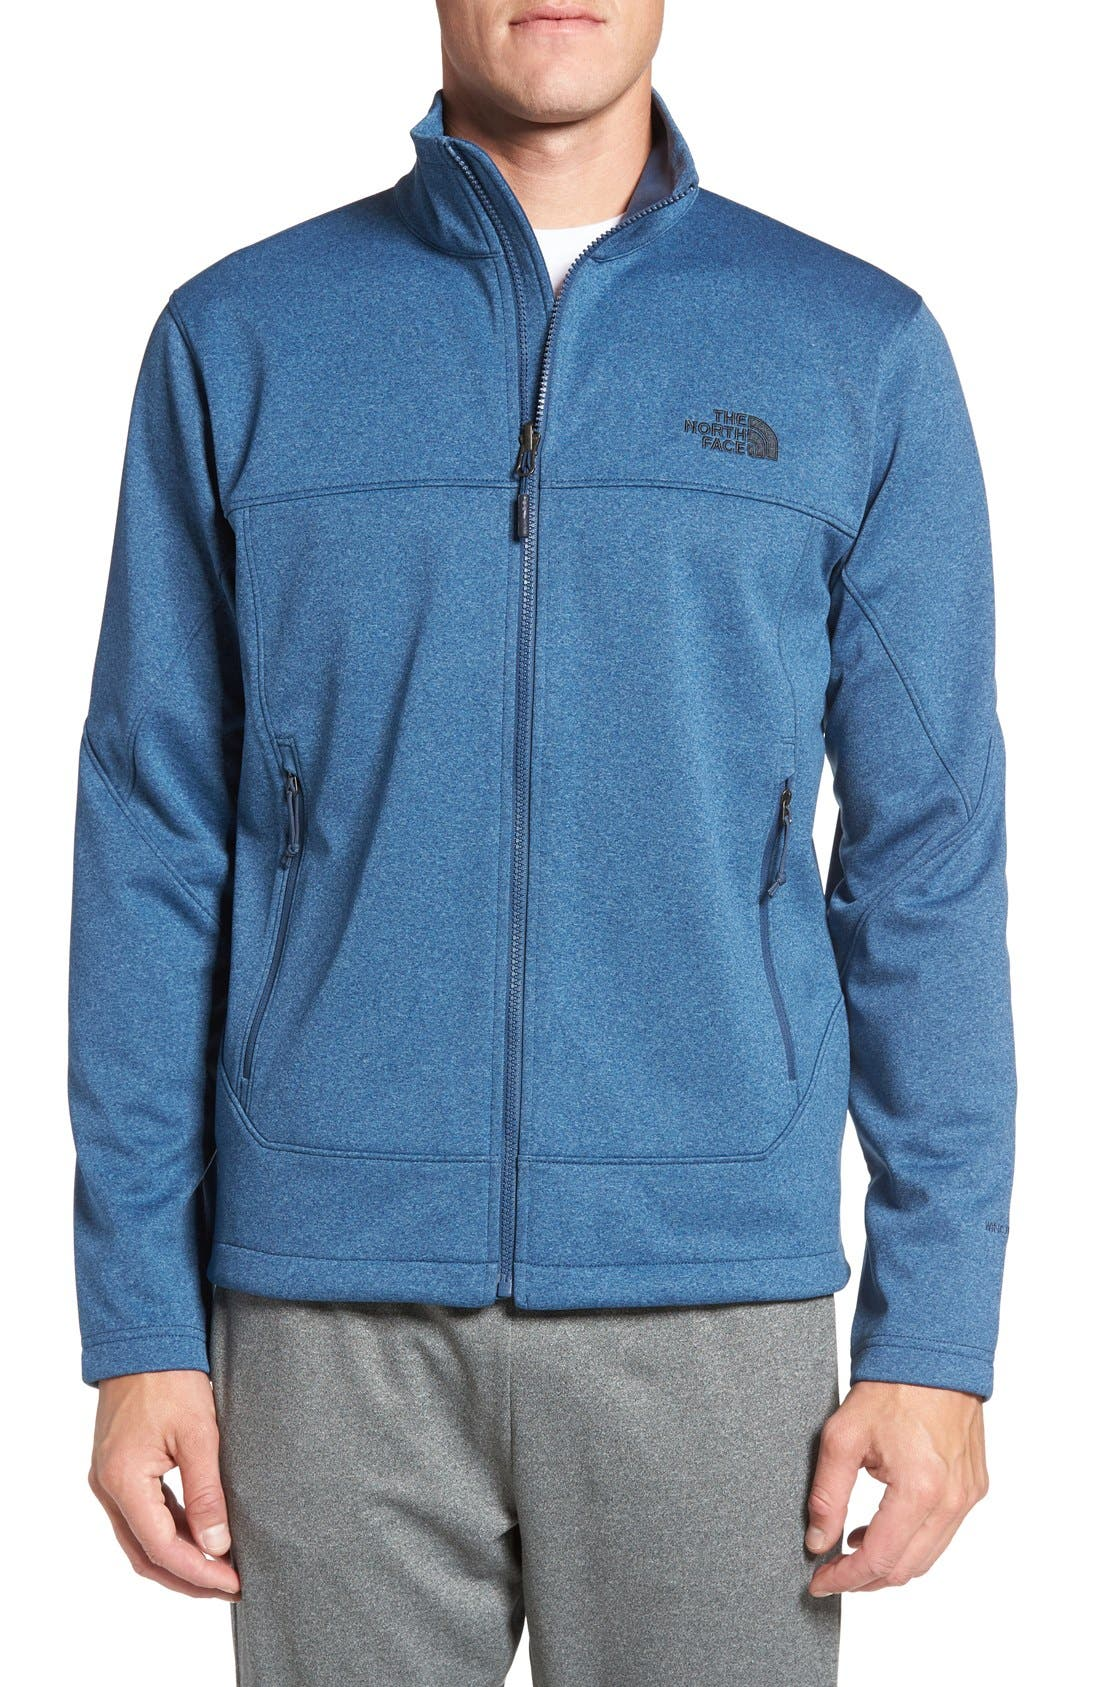 Main Image - The North Face 'Canyonwall' Fleece Jacket